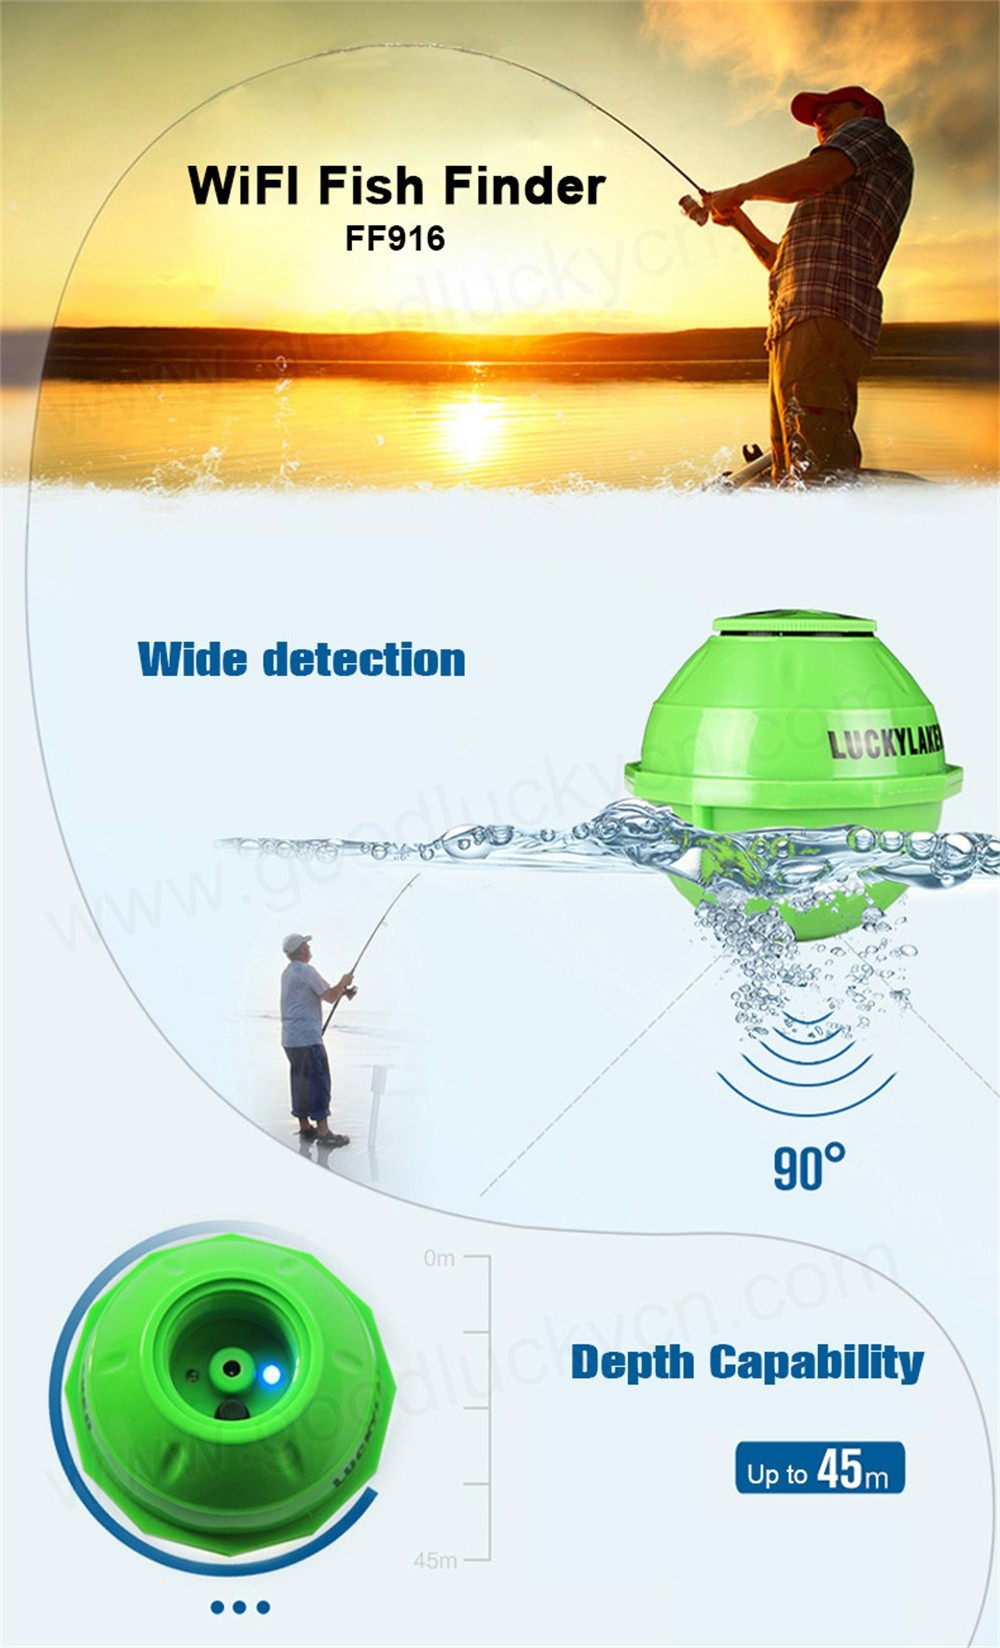 Wireless 50M WIFI Sonar Fish Finder 130 FEET (45 Meters) Rechargeable Lithuim Battery IPHONE IPAD IOS Android Fish Finder FF916